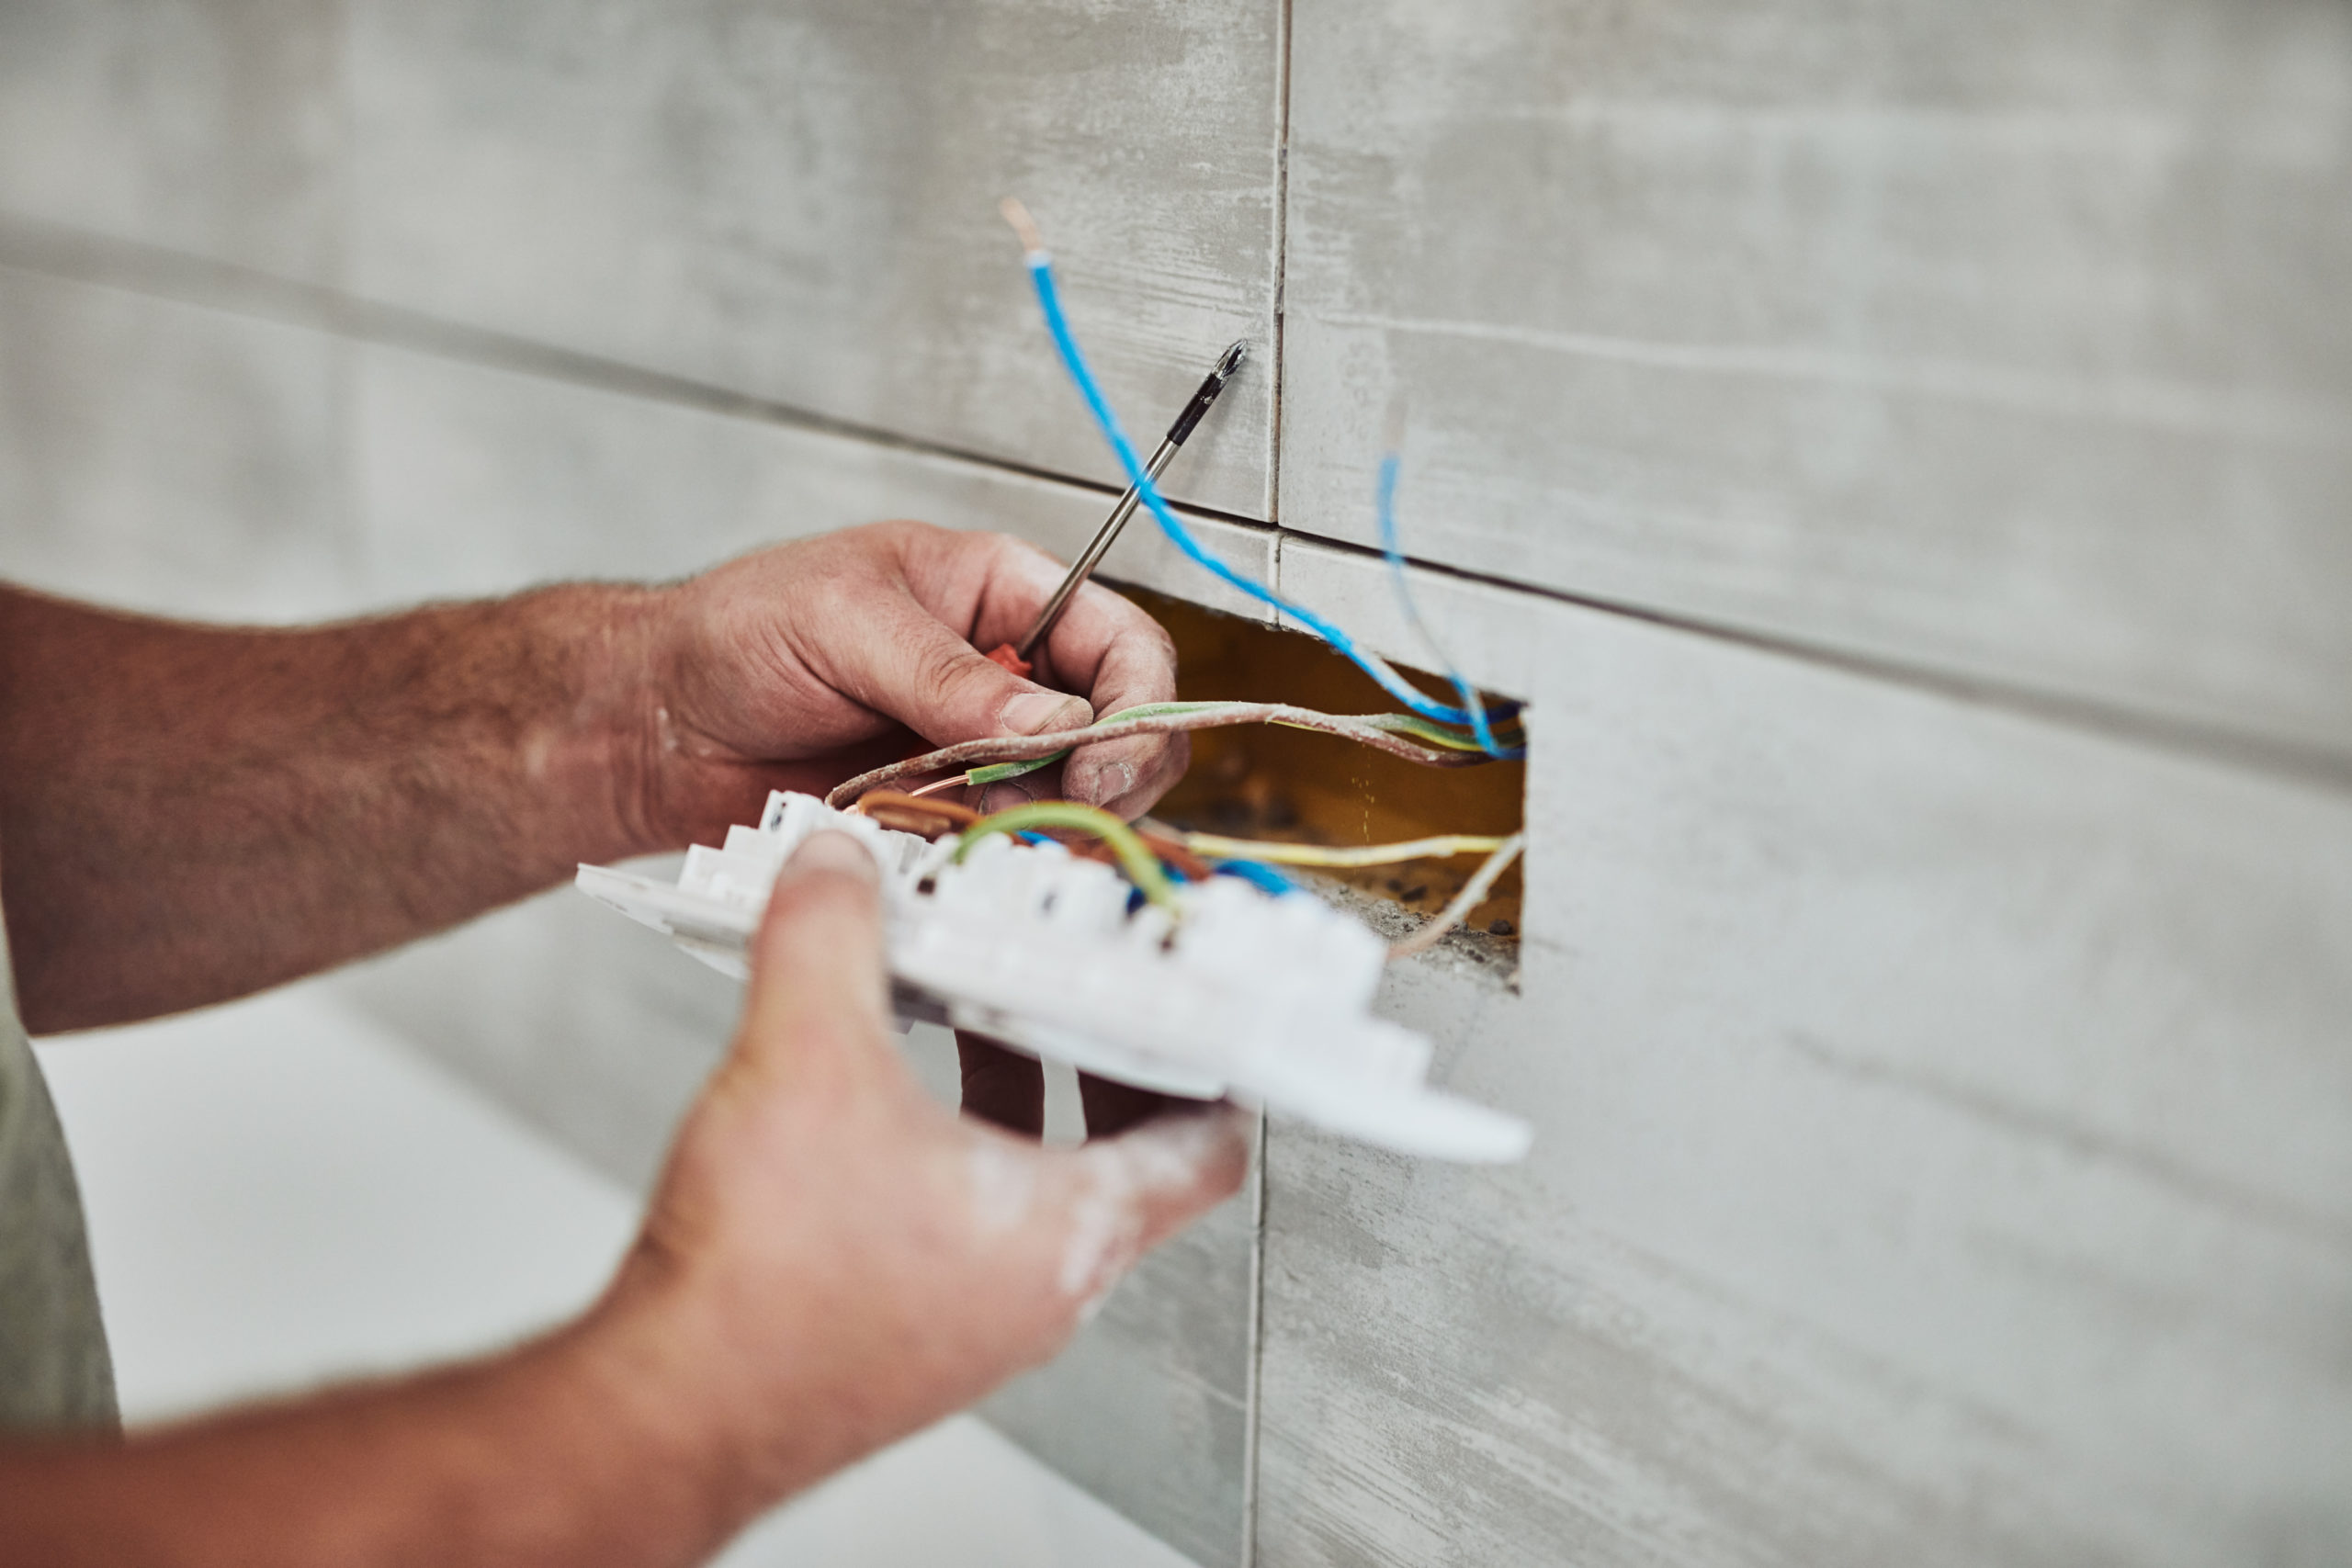 Electrician repairing / fixing wires in the wall.